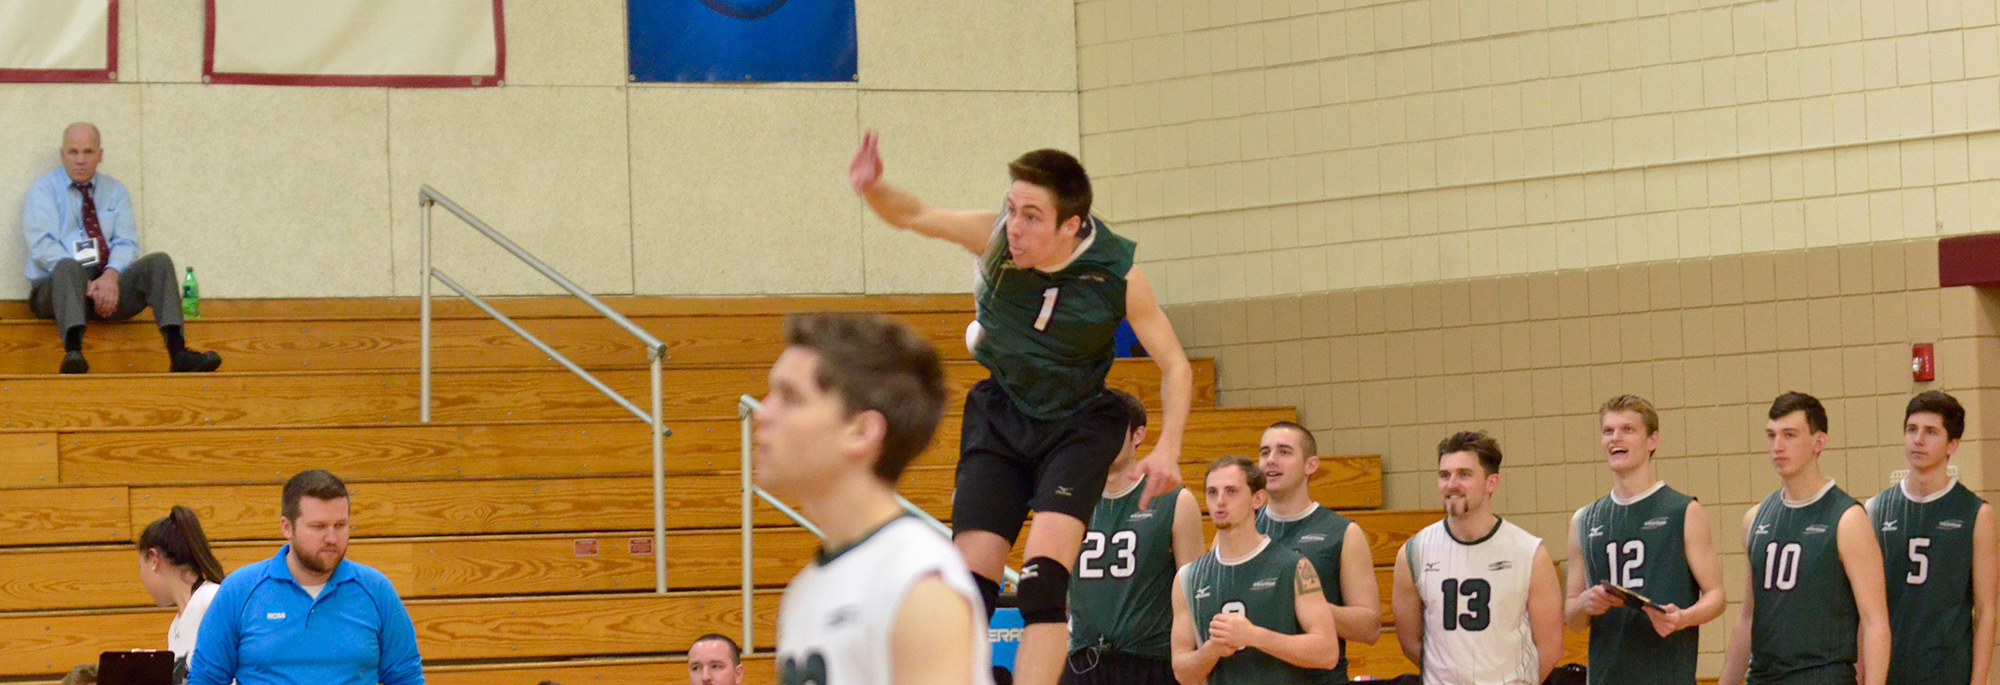 Mustangs Run Continues Defeating No. 15 Elms In Straight Sets